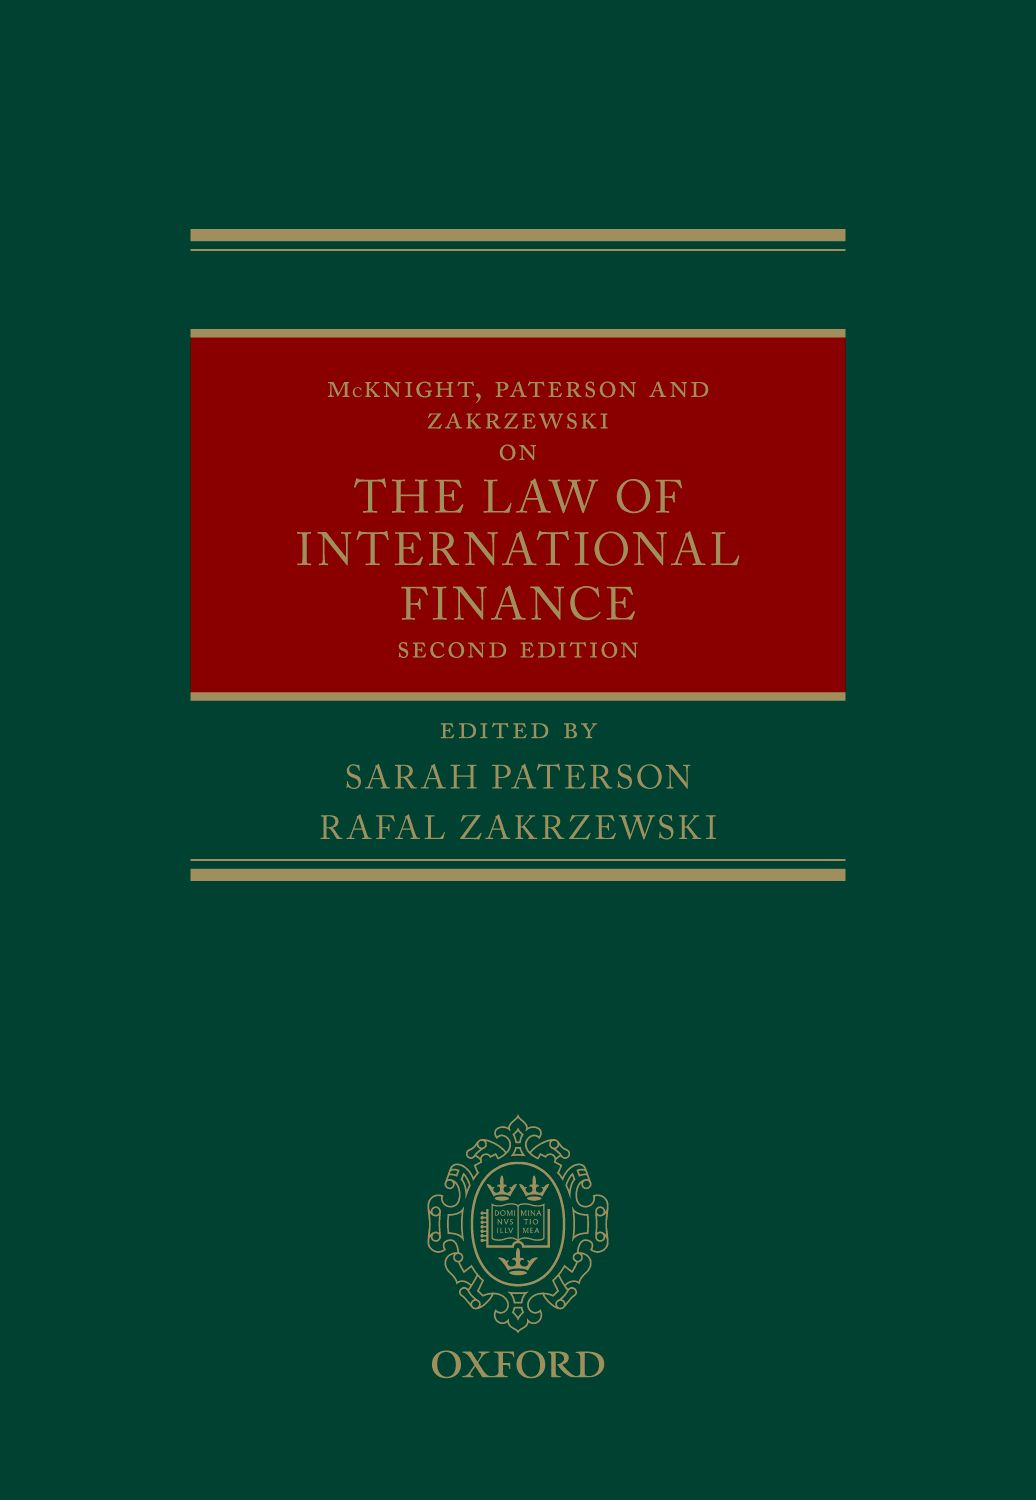 McKnight, Paterson, & Zakrzewski on the Law of International Finance